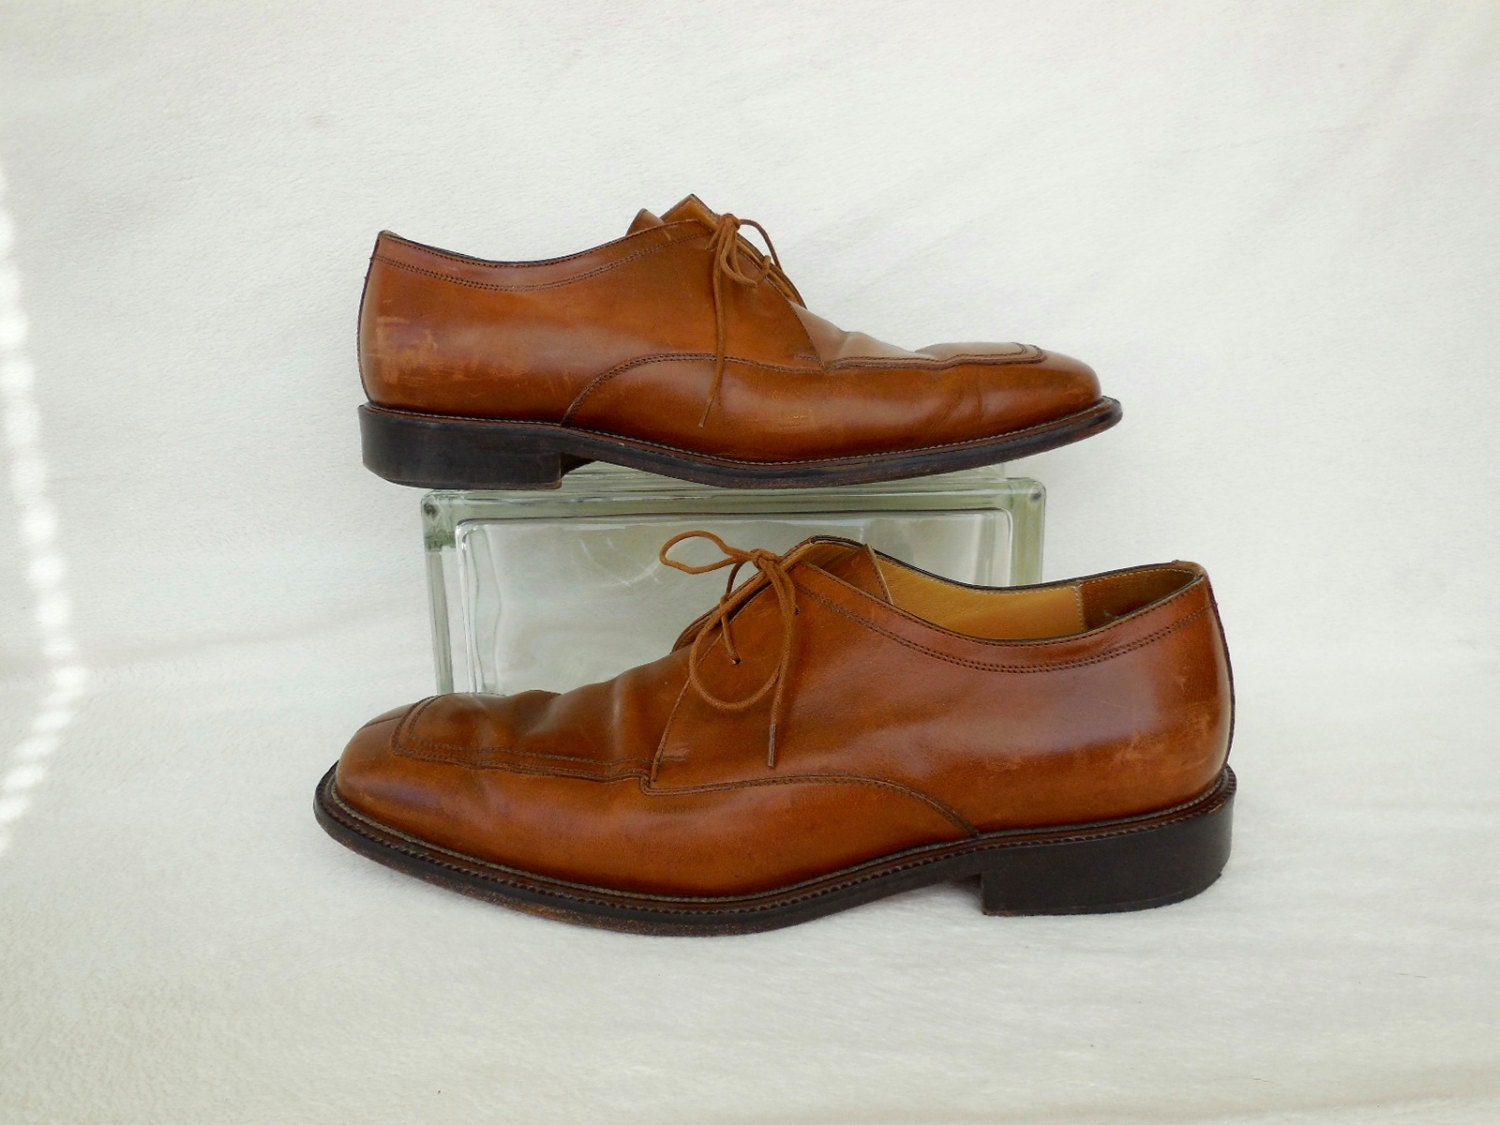 7d65a15466a9d Cognac OXFORDS/MERCANTI FIORENTINI/Mens Leather Oxfords/Oxford Dress  Shoe/Mad Men/Italian Shoes/Made In Italy/Mens Vintage Shoes/Size 10.5 M